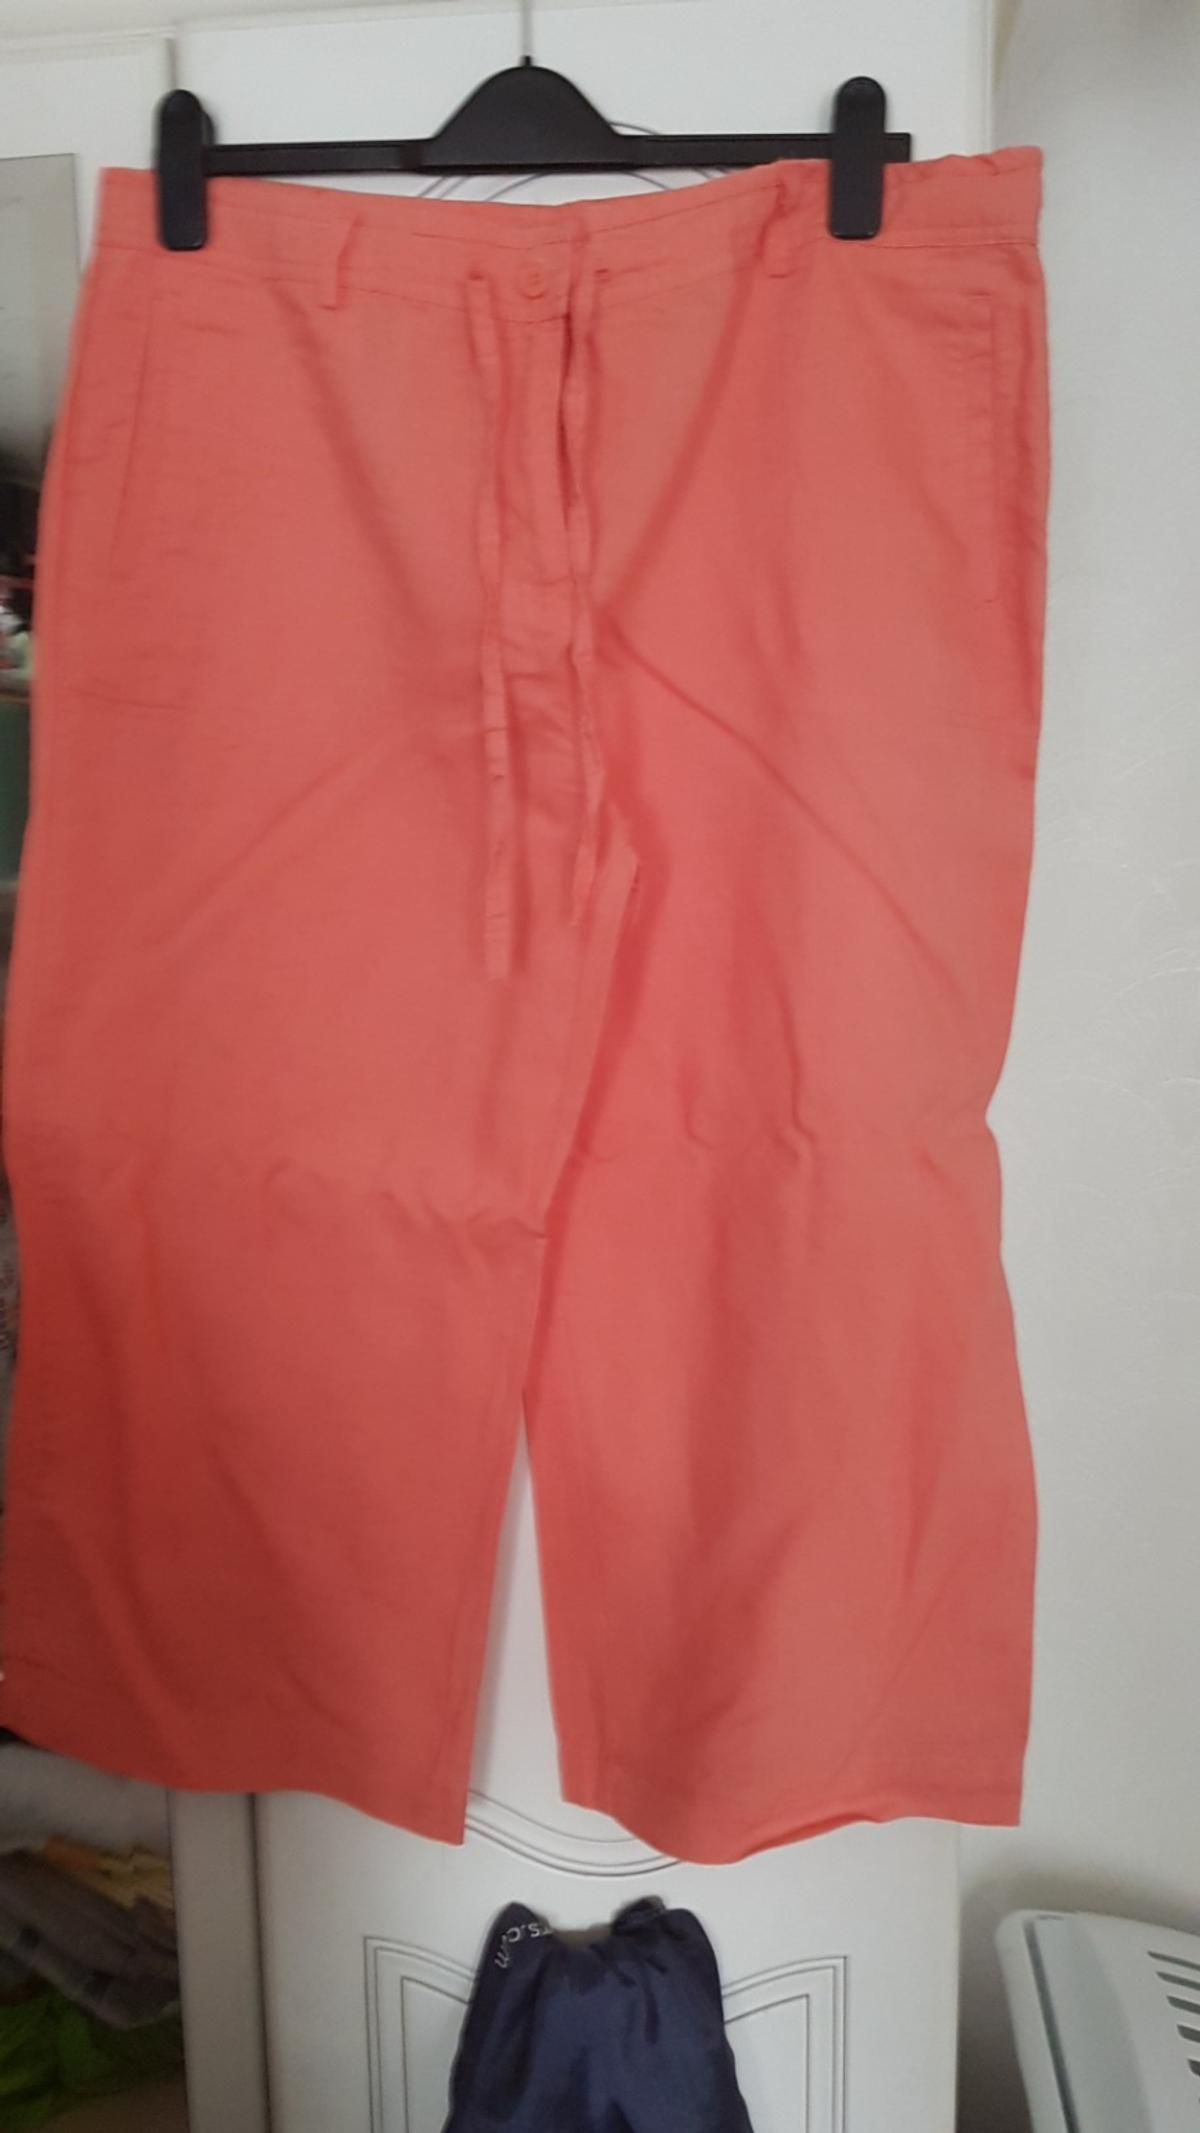 save off promo code lace up in ladies linen crop trousers size 16